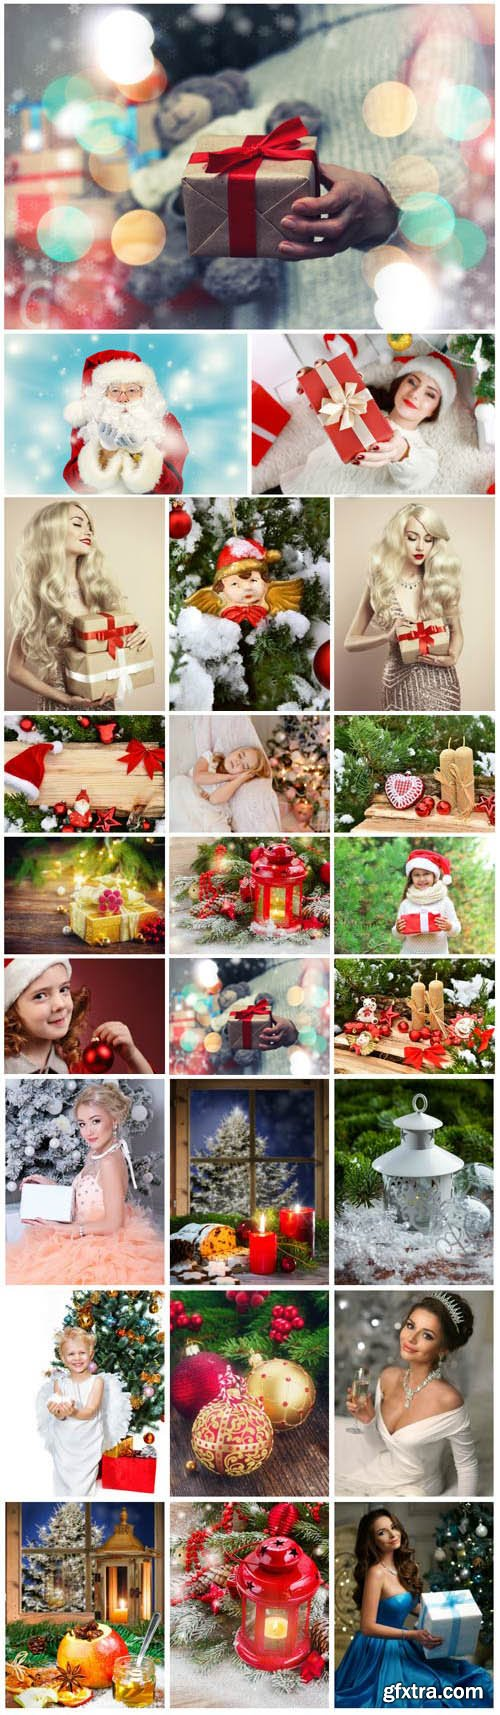 New Year and Christmas stock photos №76